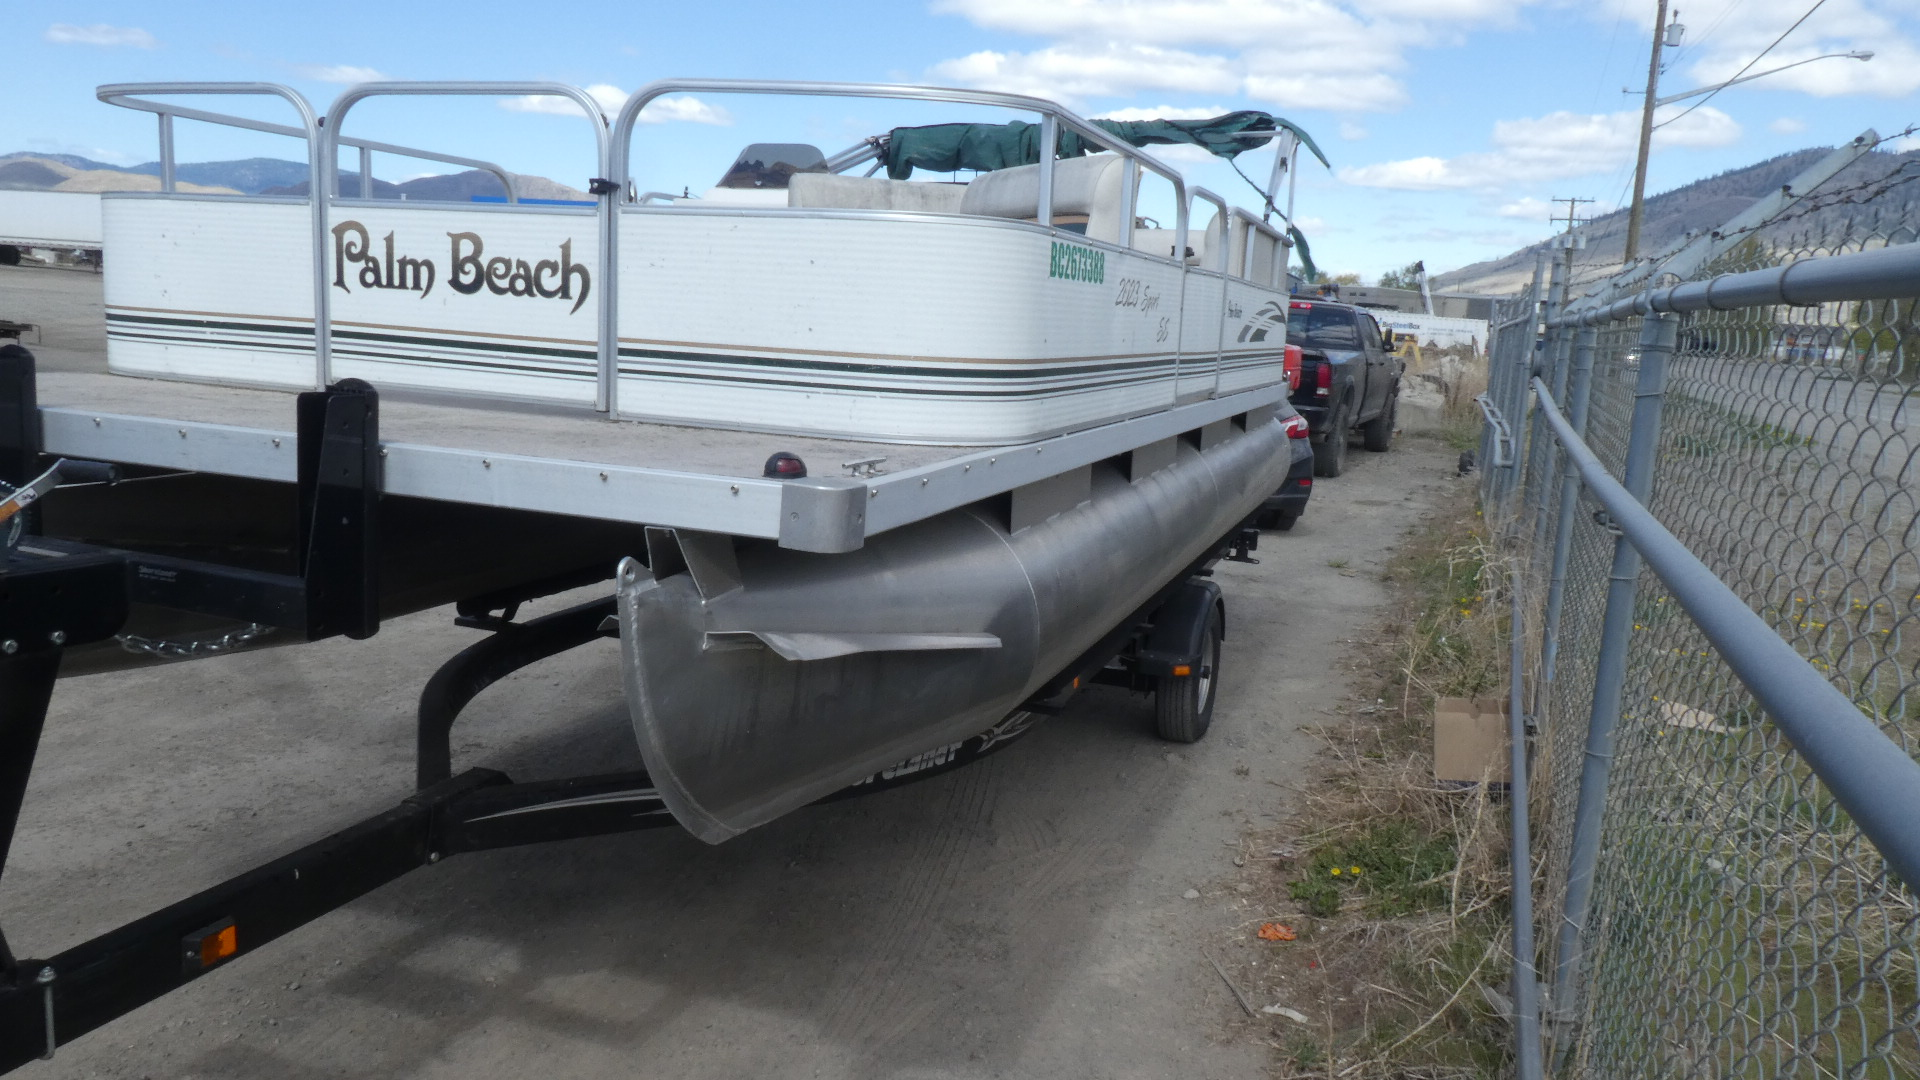 2009 Palm Beach 2023 Sport SE     ID#B-KAM-0225 Located in Kamloops